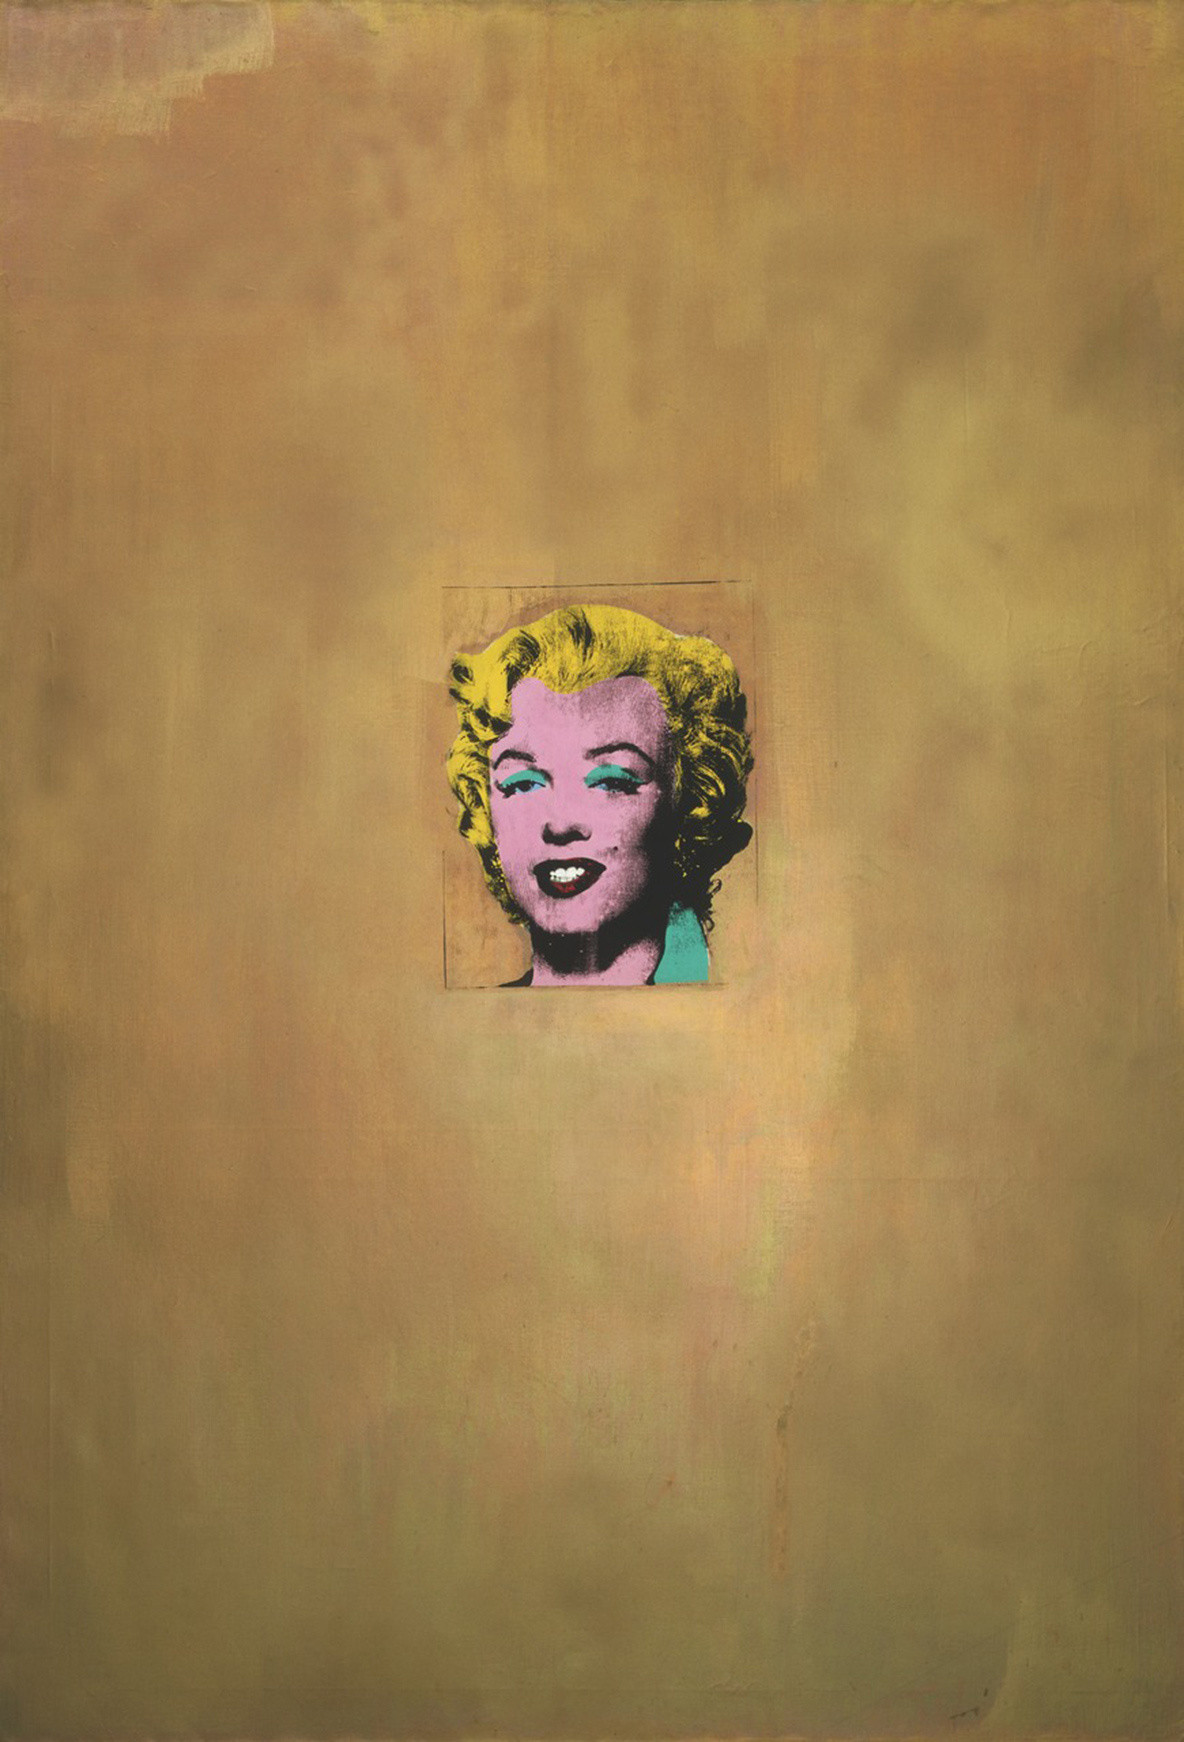 "Andy Warhol. Gold Marilyn Monroe. 1962. Silkscreen ink on synthetic polymer paint on canvas, 6' 11 1/4"" x 57"" (211.4 x 144.7 cm). The Museum of Modern Art, NY. Gift of Philip Johnson. © 2017 Andy Warhol Foundation for the Visual Arts/Artists Rights Society (ARS), New York"